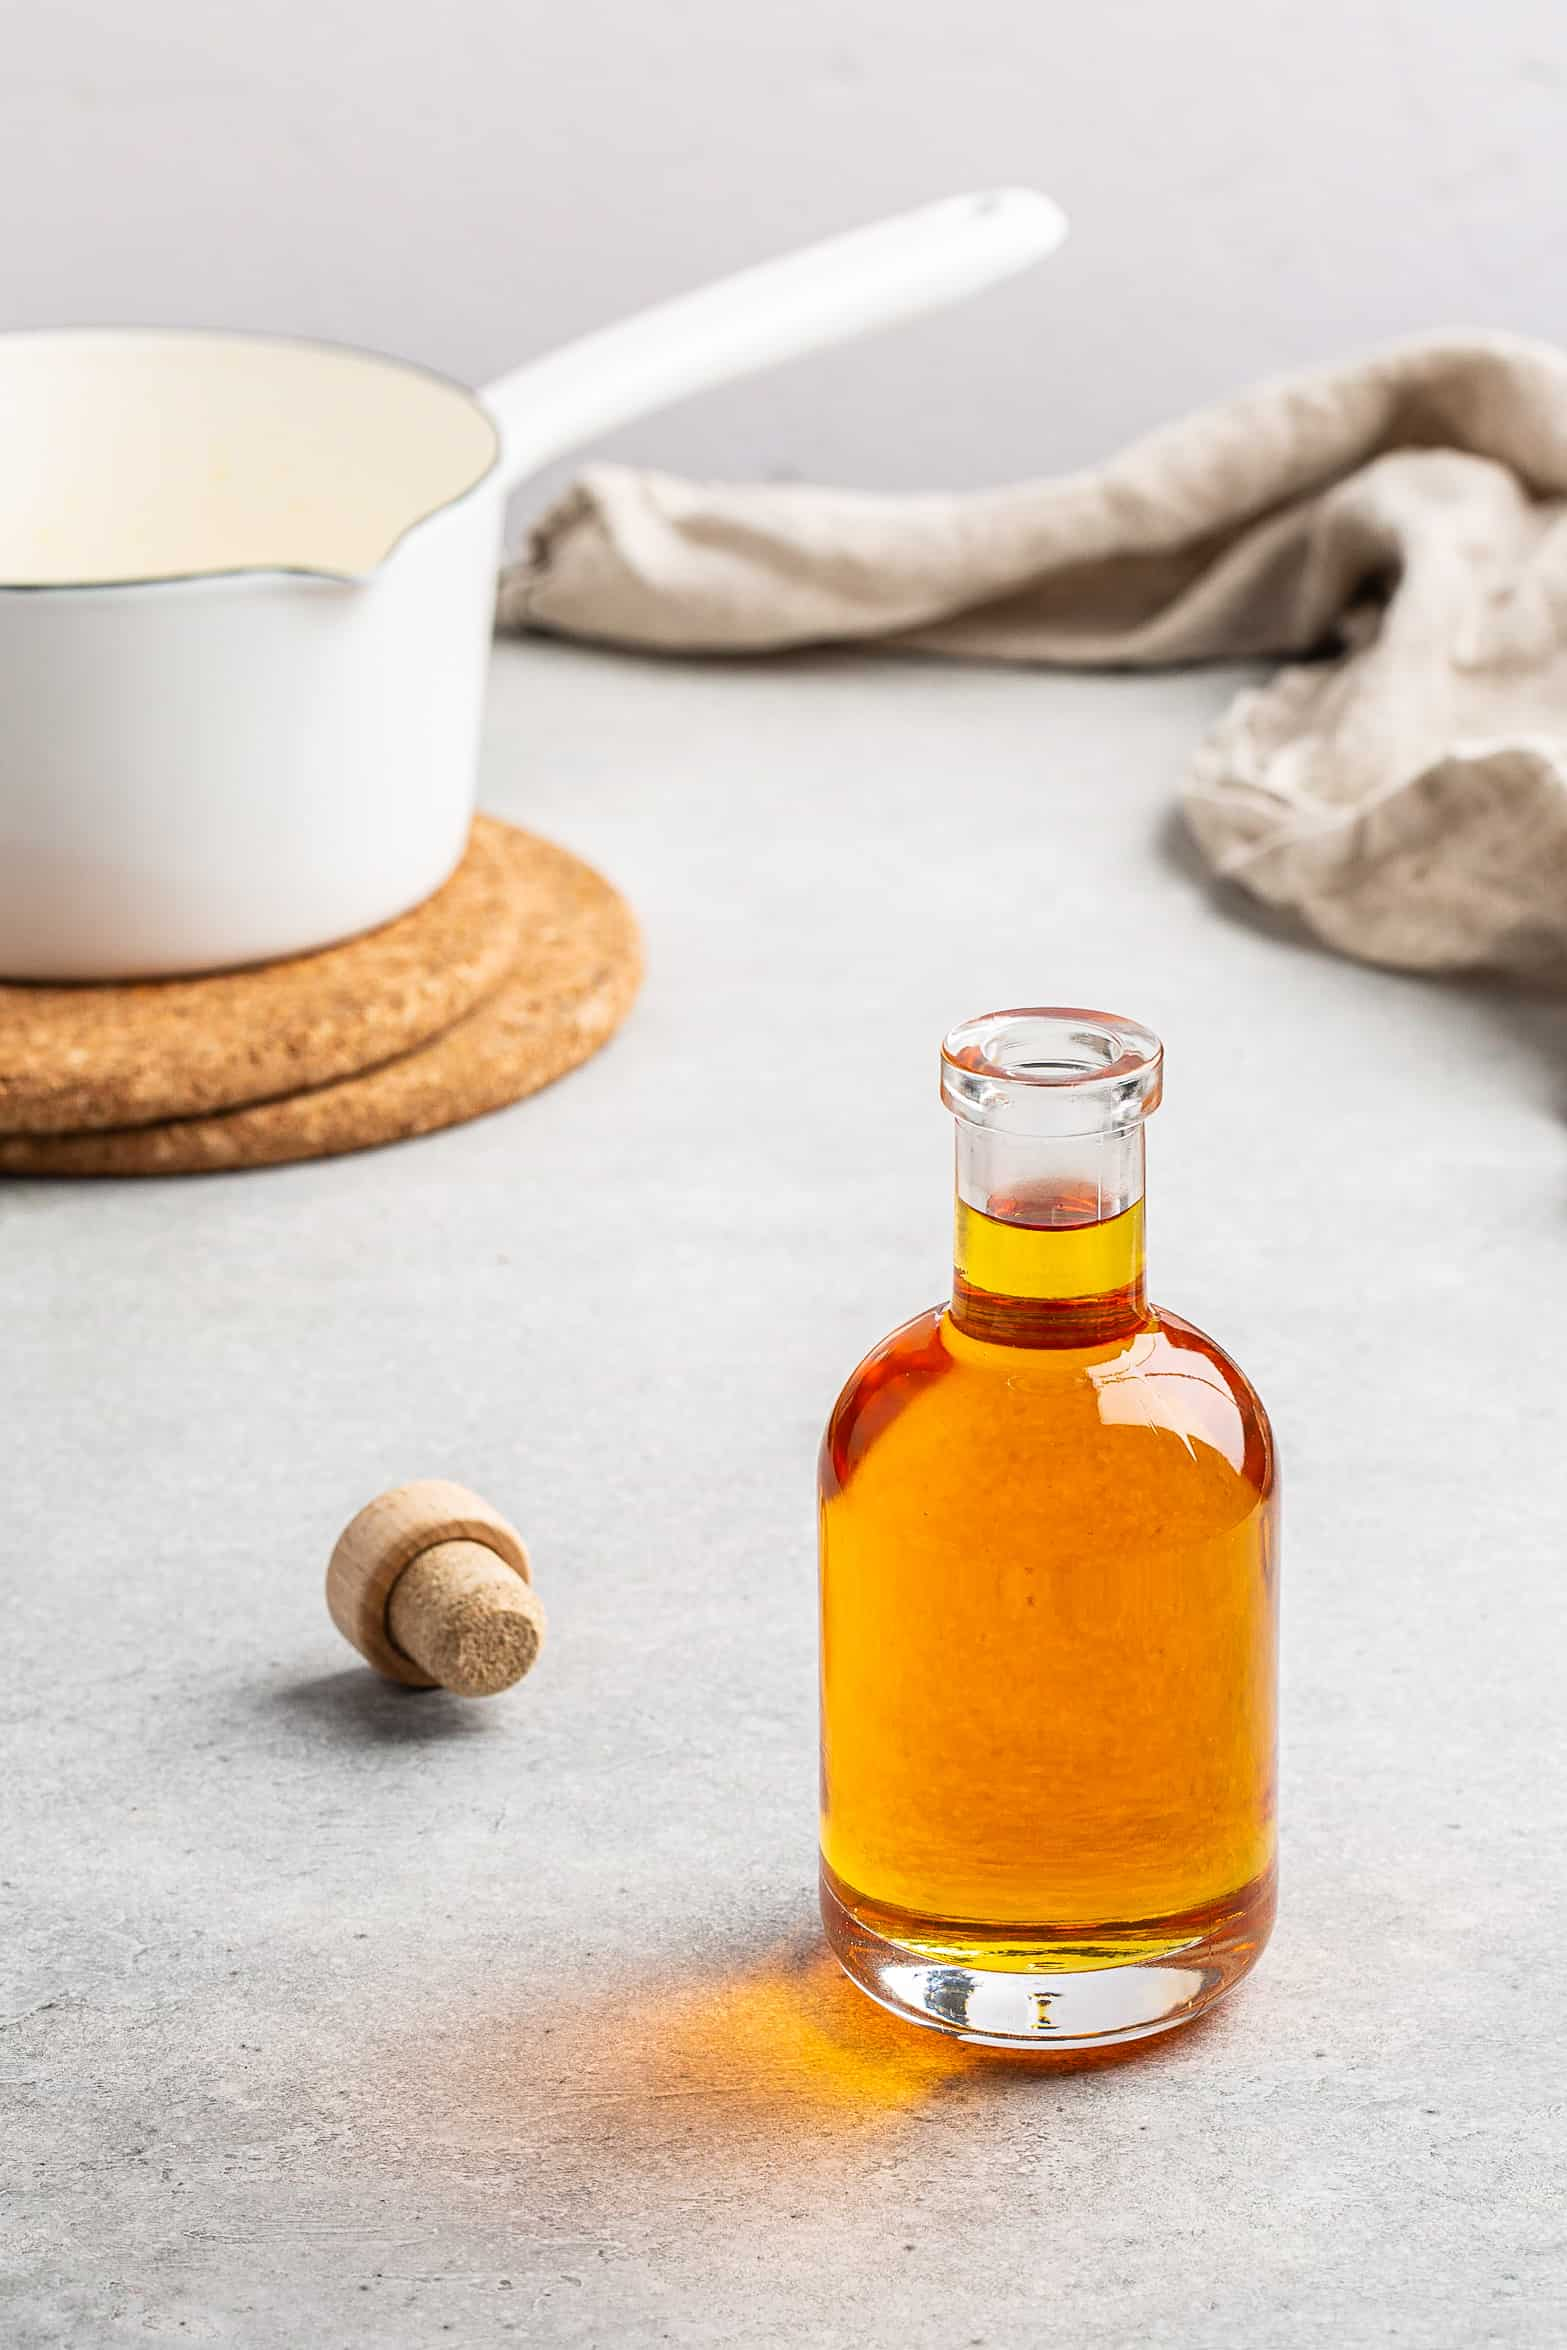 caramel syrup in a bottle with white pan in background